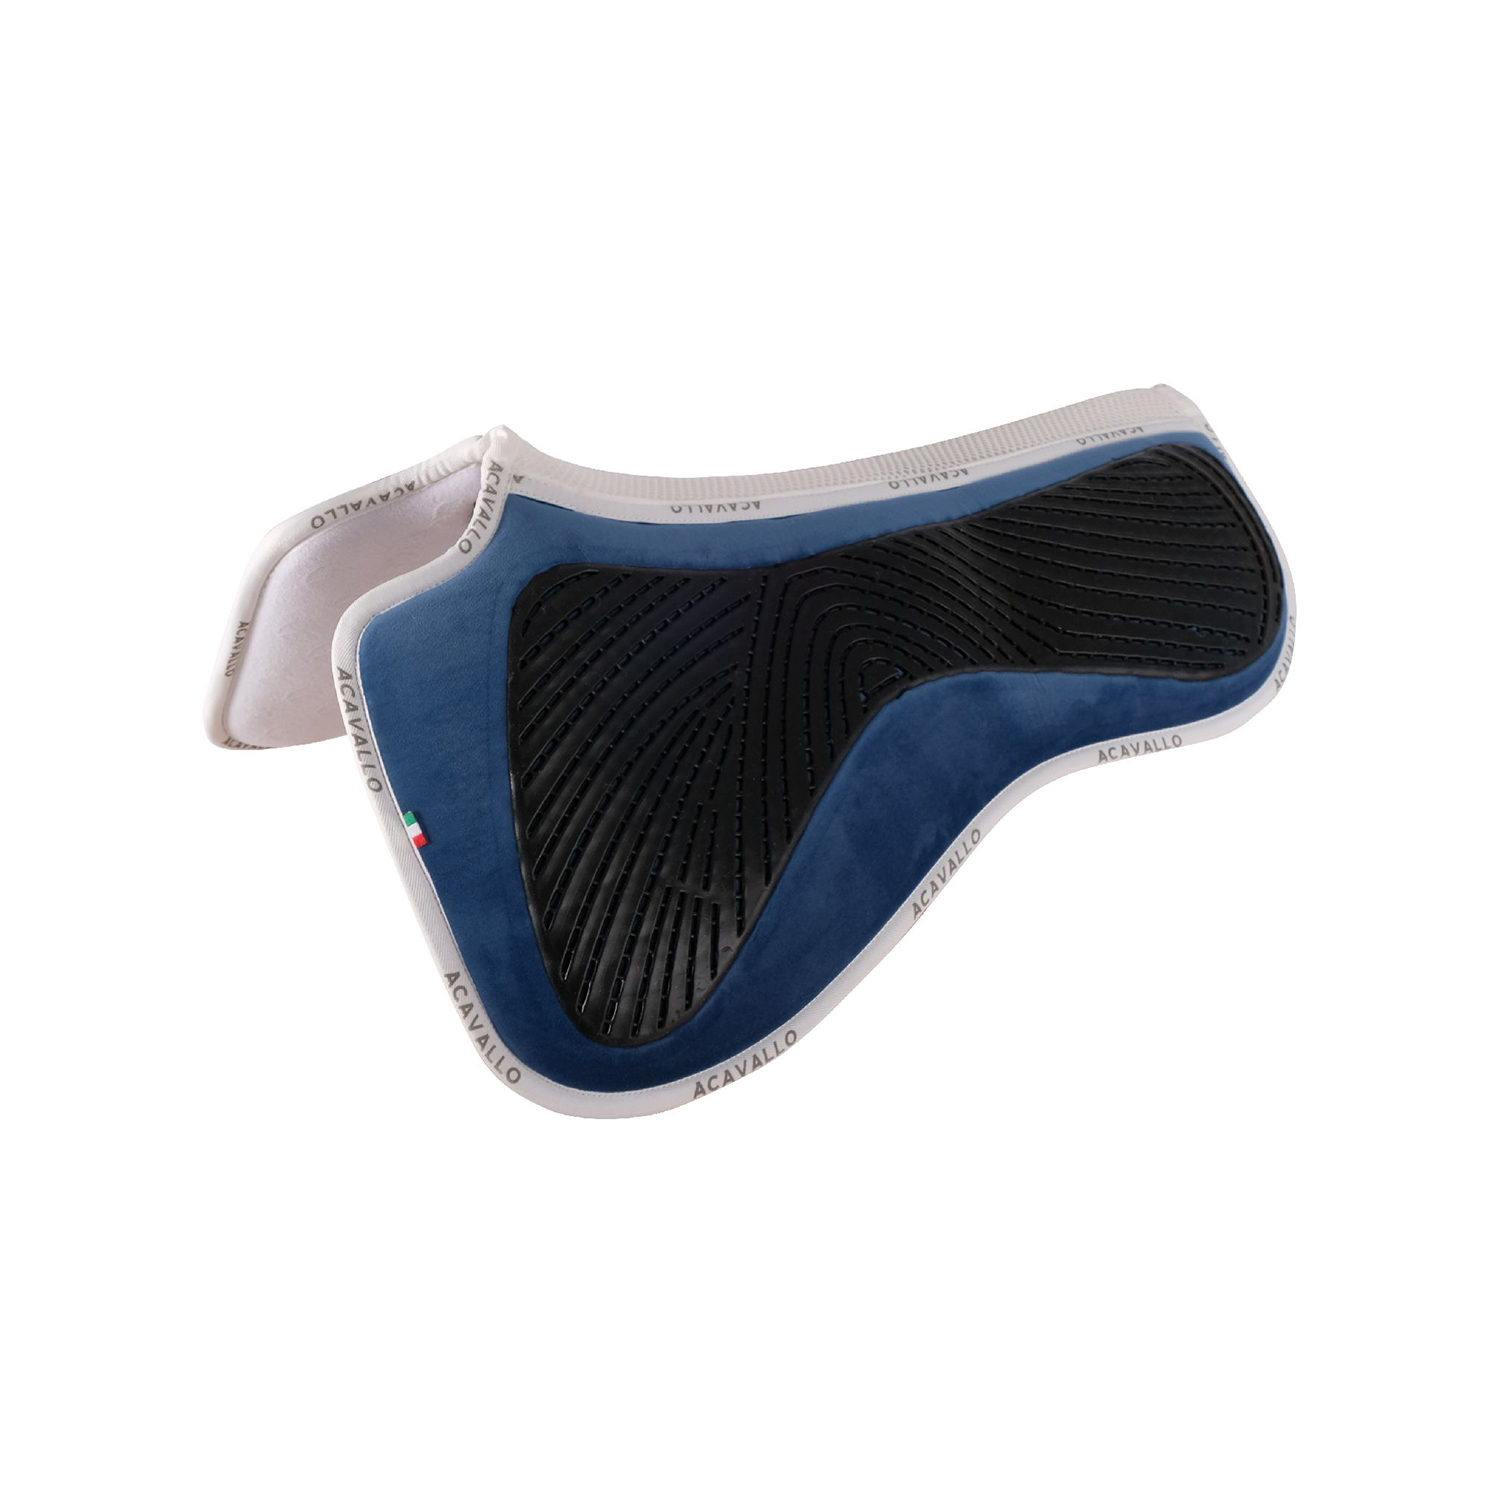 ACavallo Spine Free, Double-Face Gel/Silicon Grip System & Memory Foam, Dressage